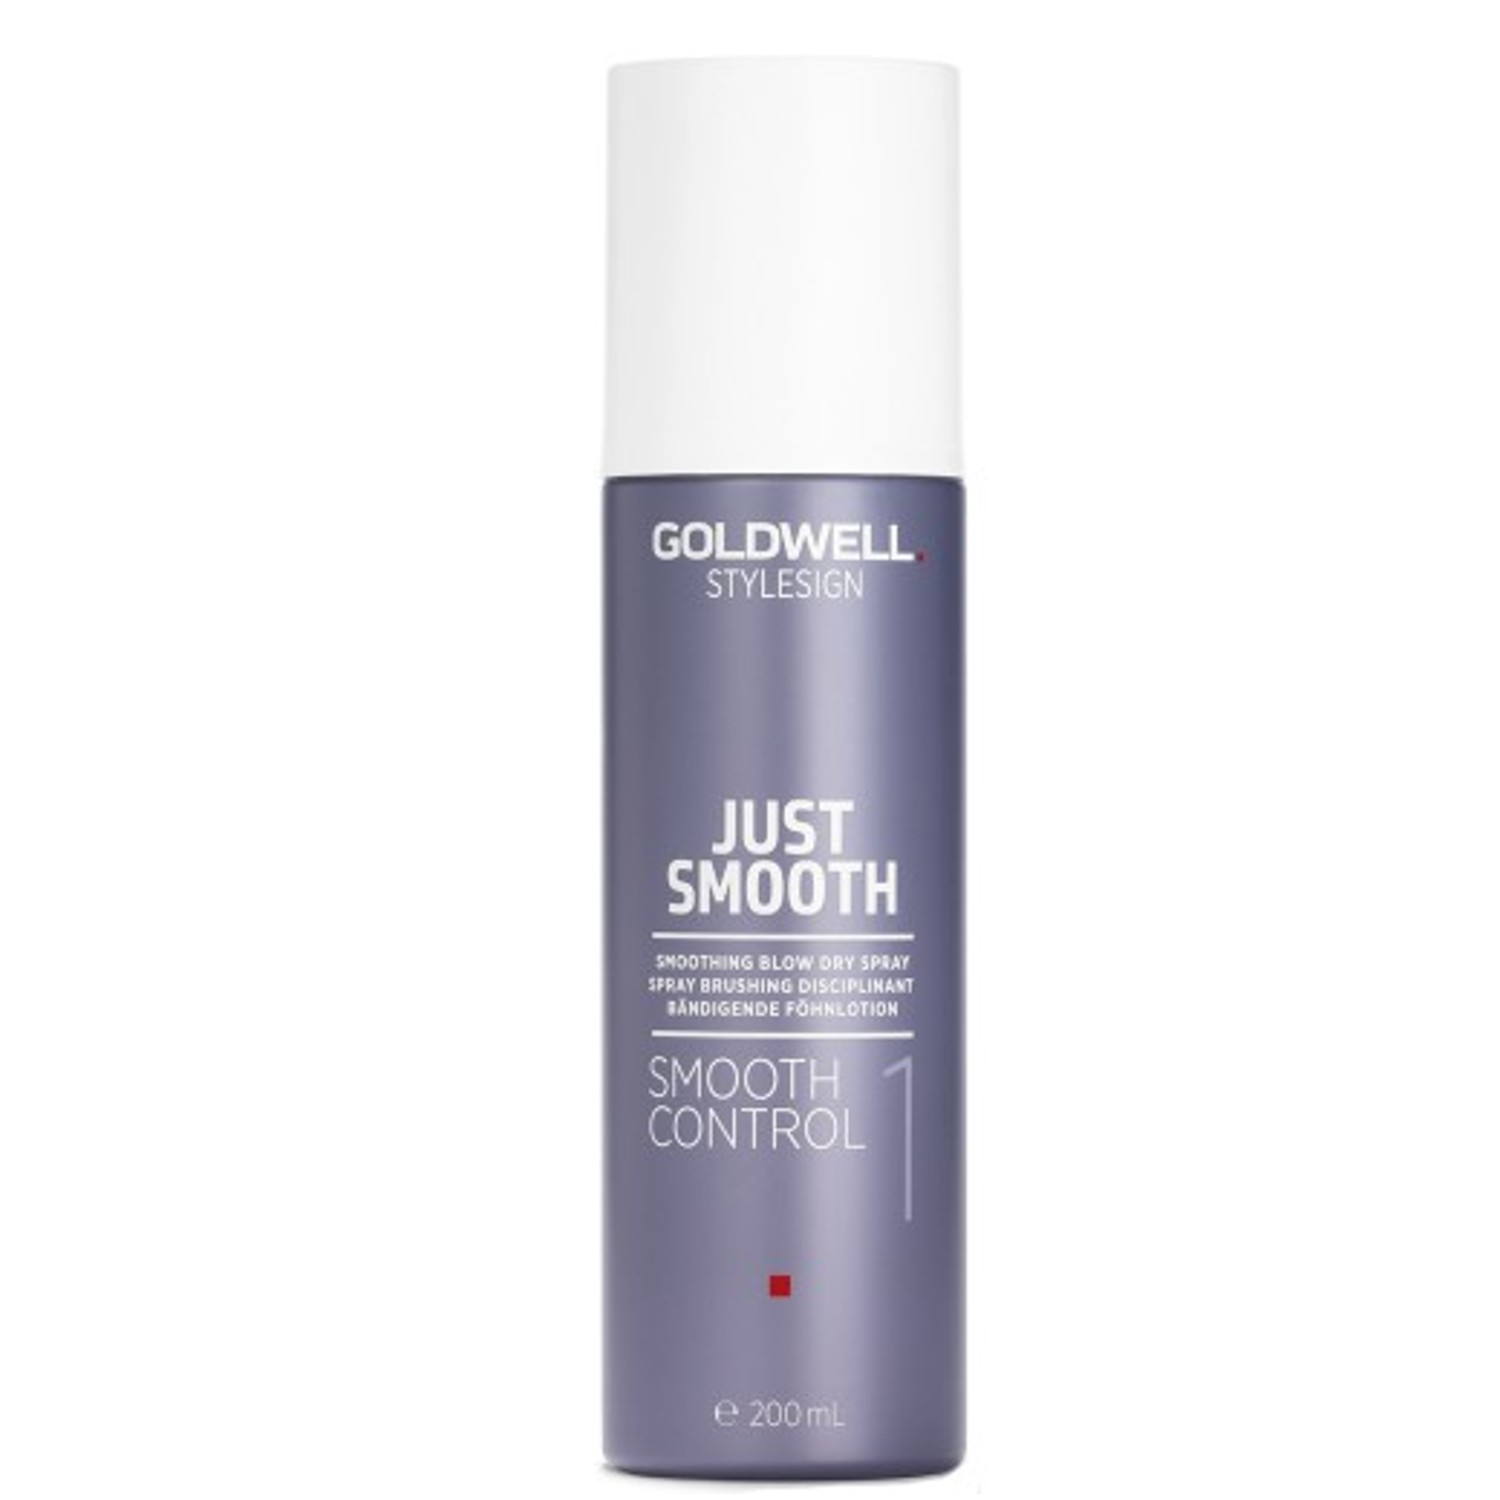 GOLDWELL Style Sign Just Smooth SMOOTH CONTROL 200 ml